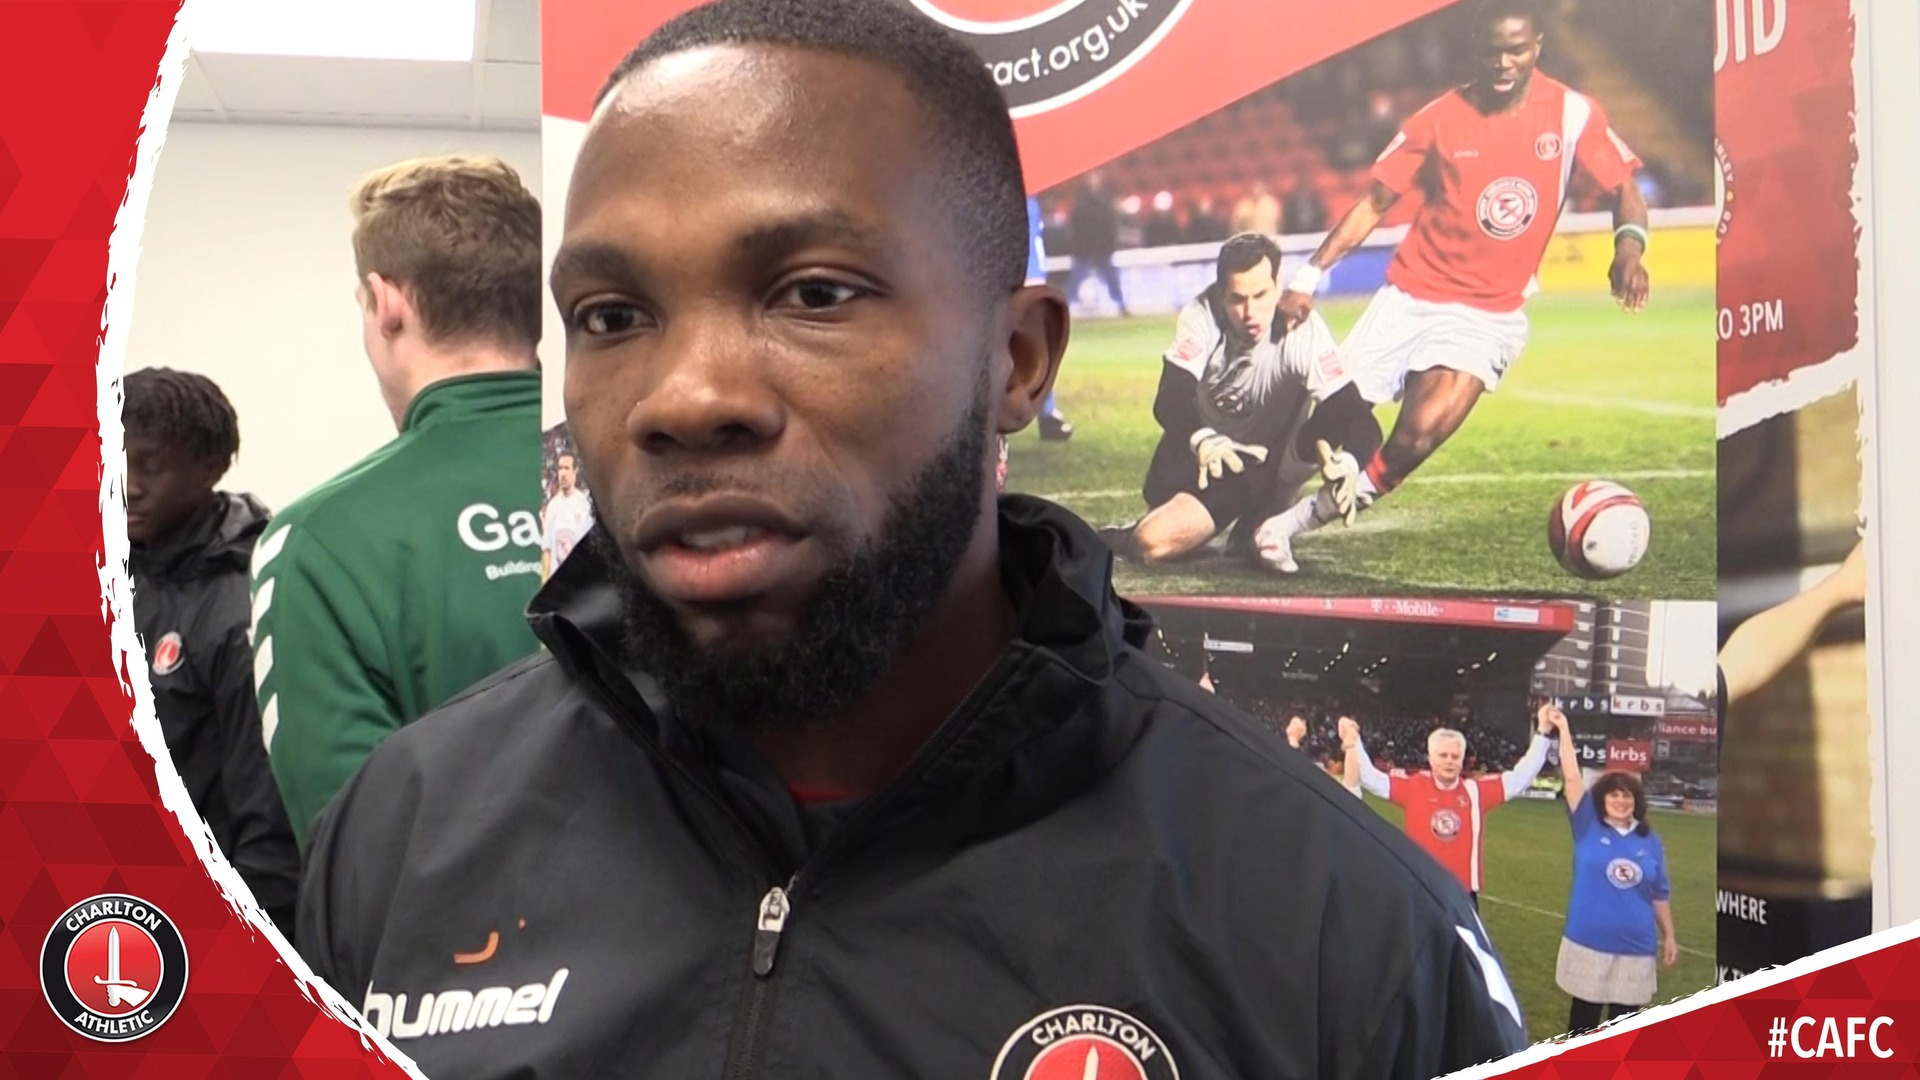 Mark Marshall supports CACT's Street Violence Ruins Lives campaign